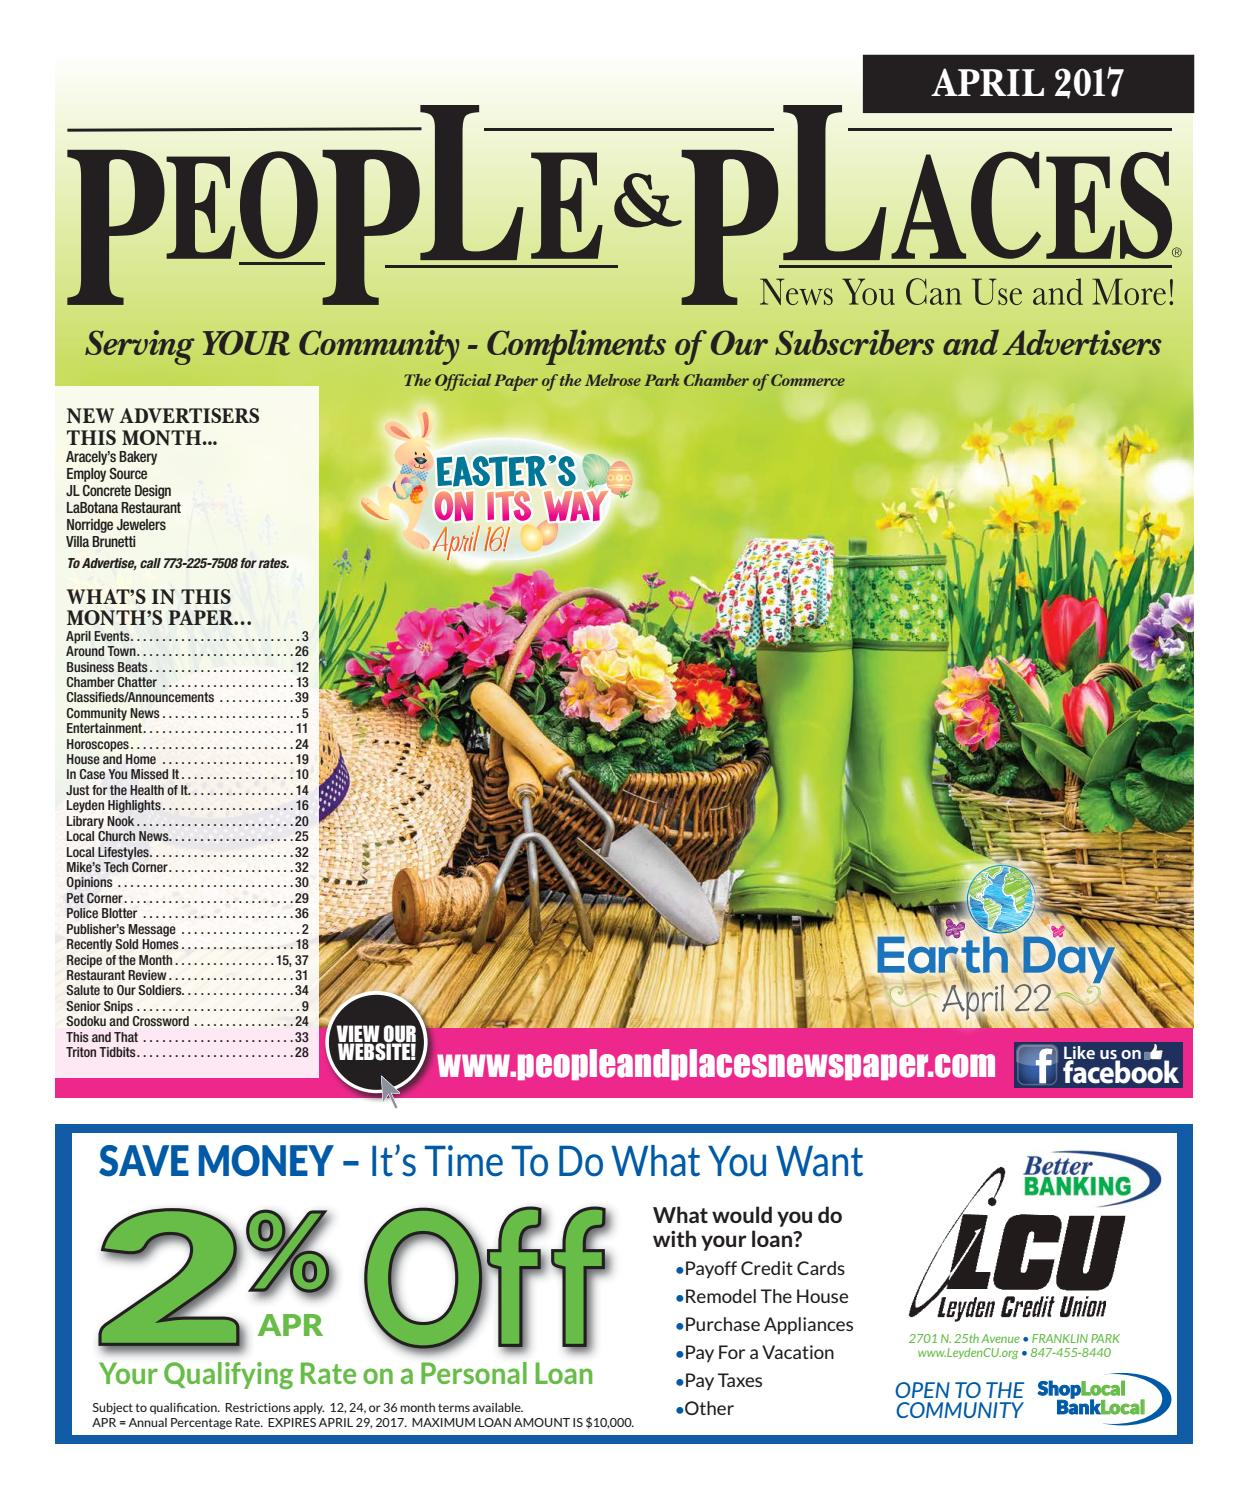 April 2017 People & Places Newspaper by Jennifer Creative - issuu